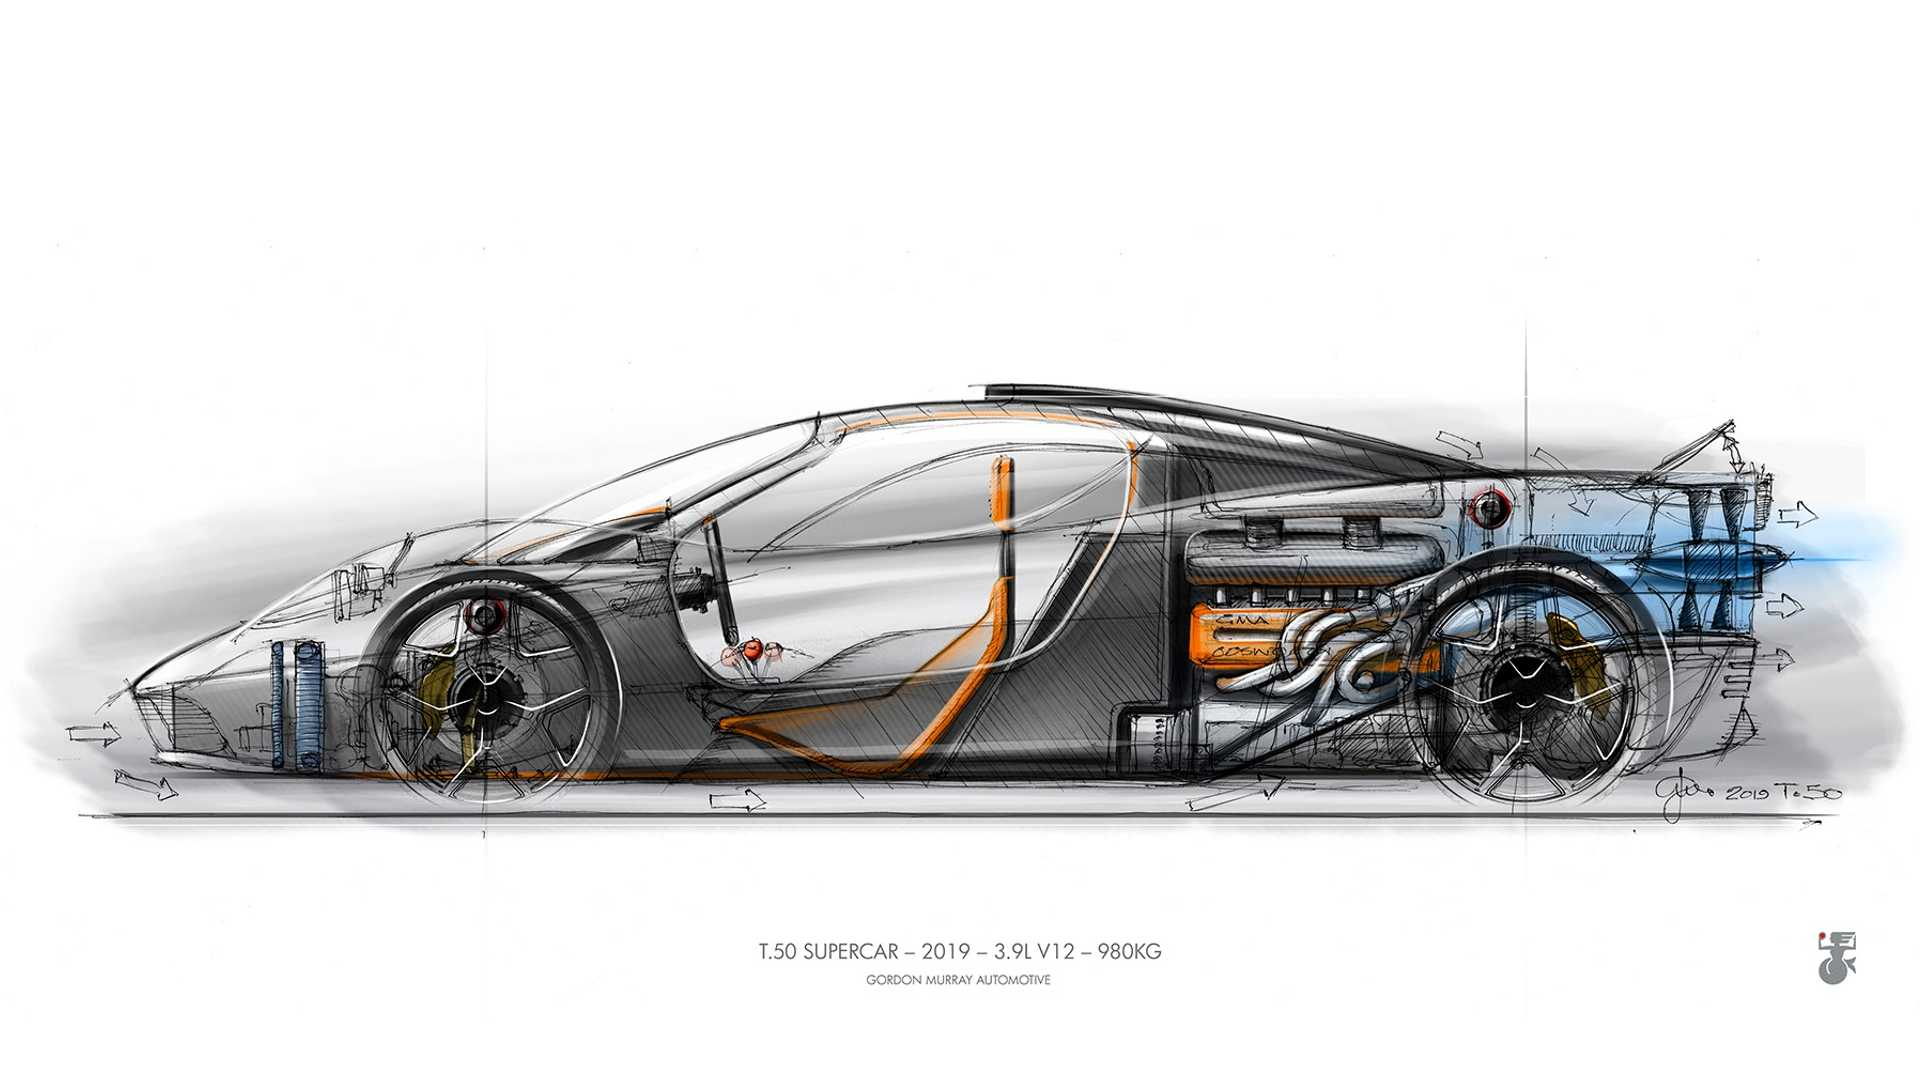 Gordon Murray's Supercar To Use Highest-Revving Engine In